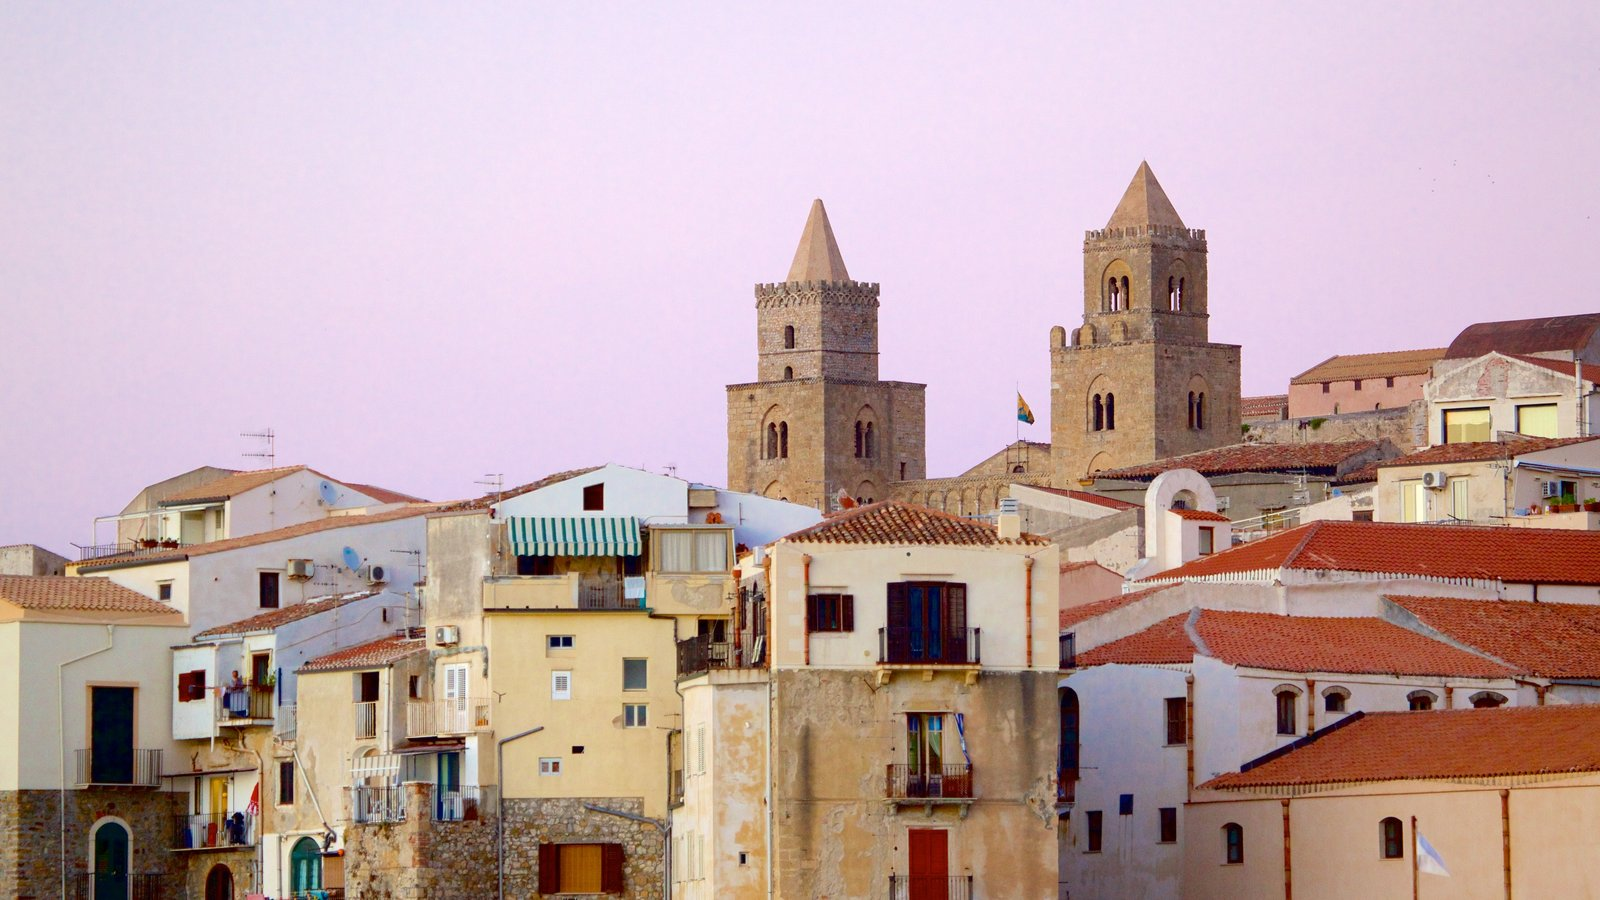 Cefalu featuring heritage architecture and a city